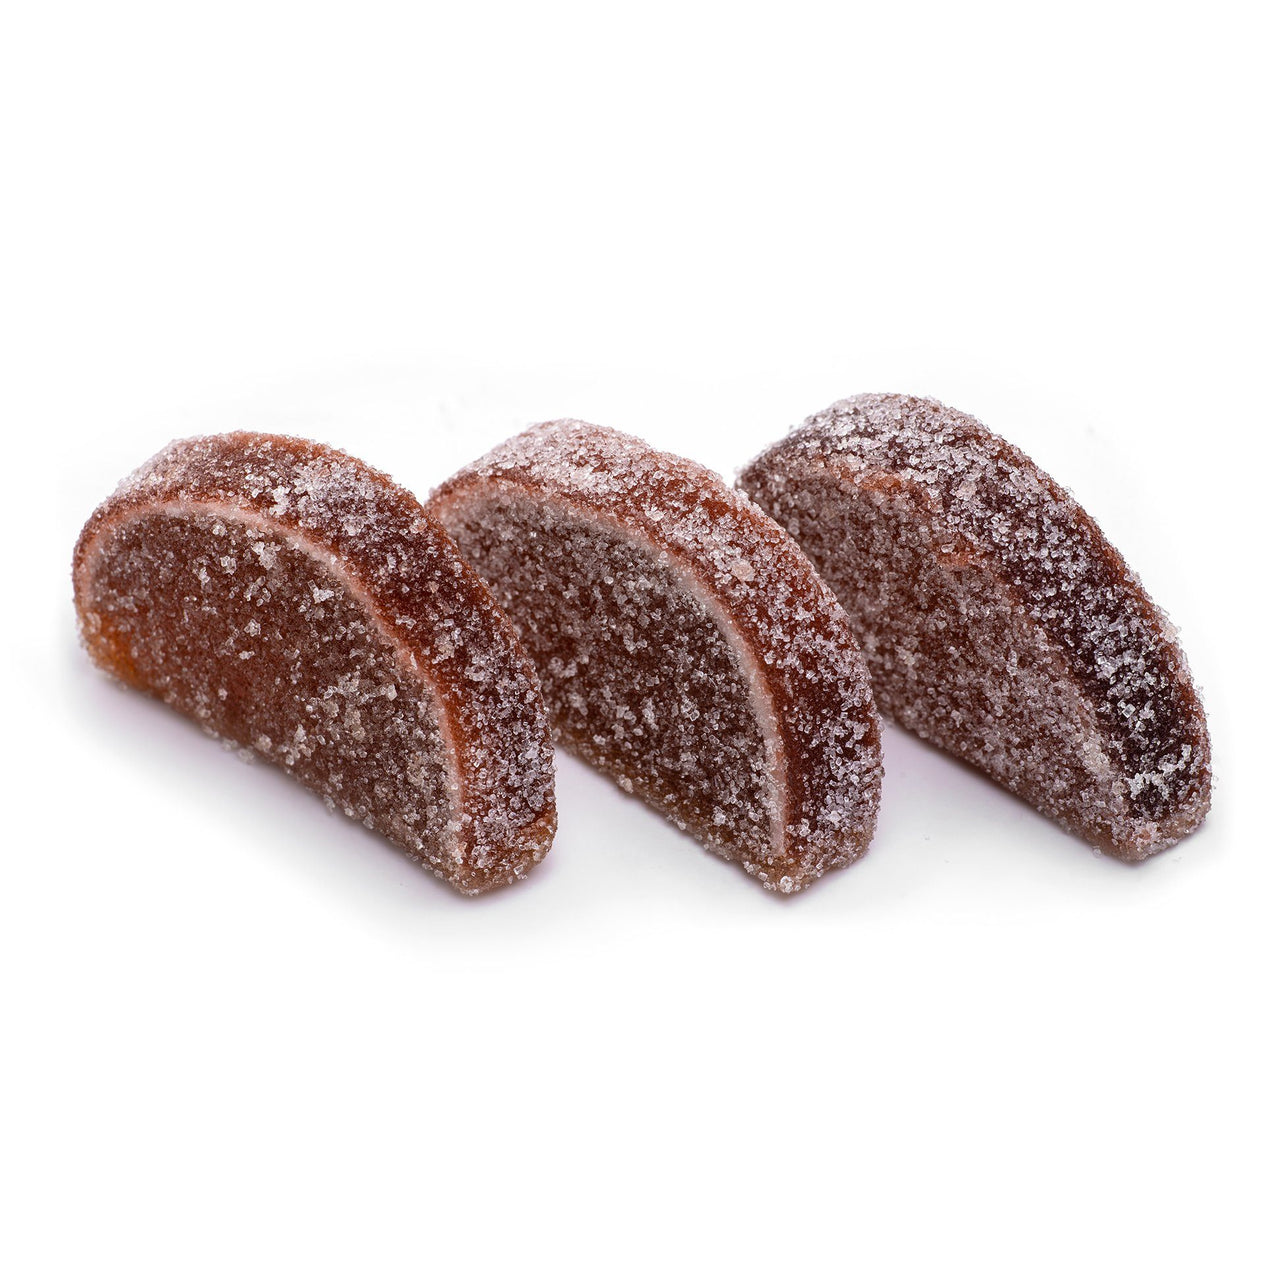 Root Beer Candy Slices (1902928166947)